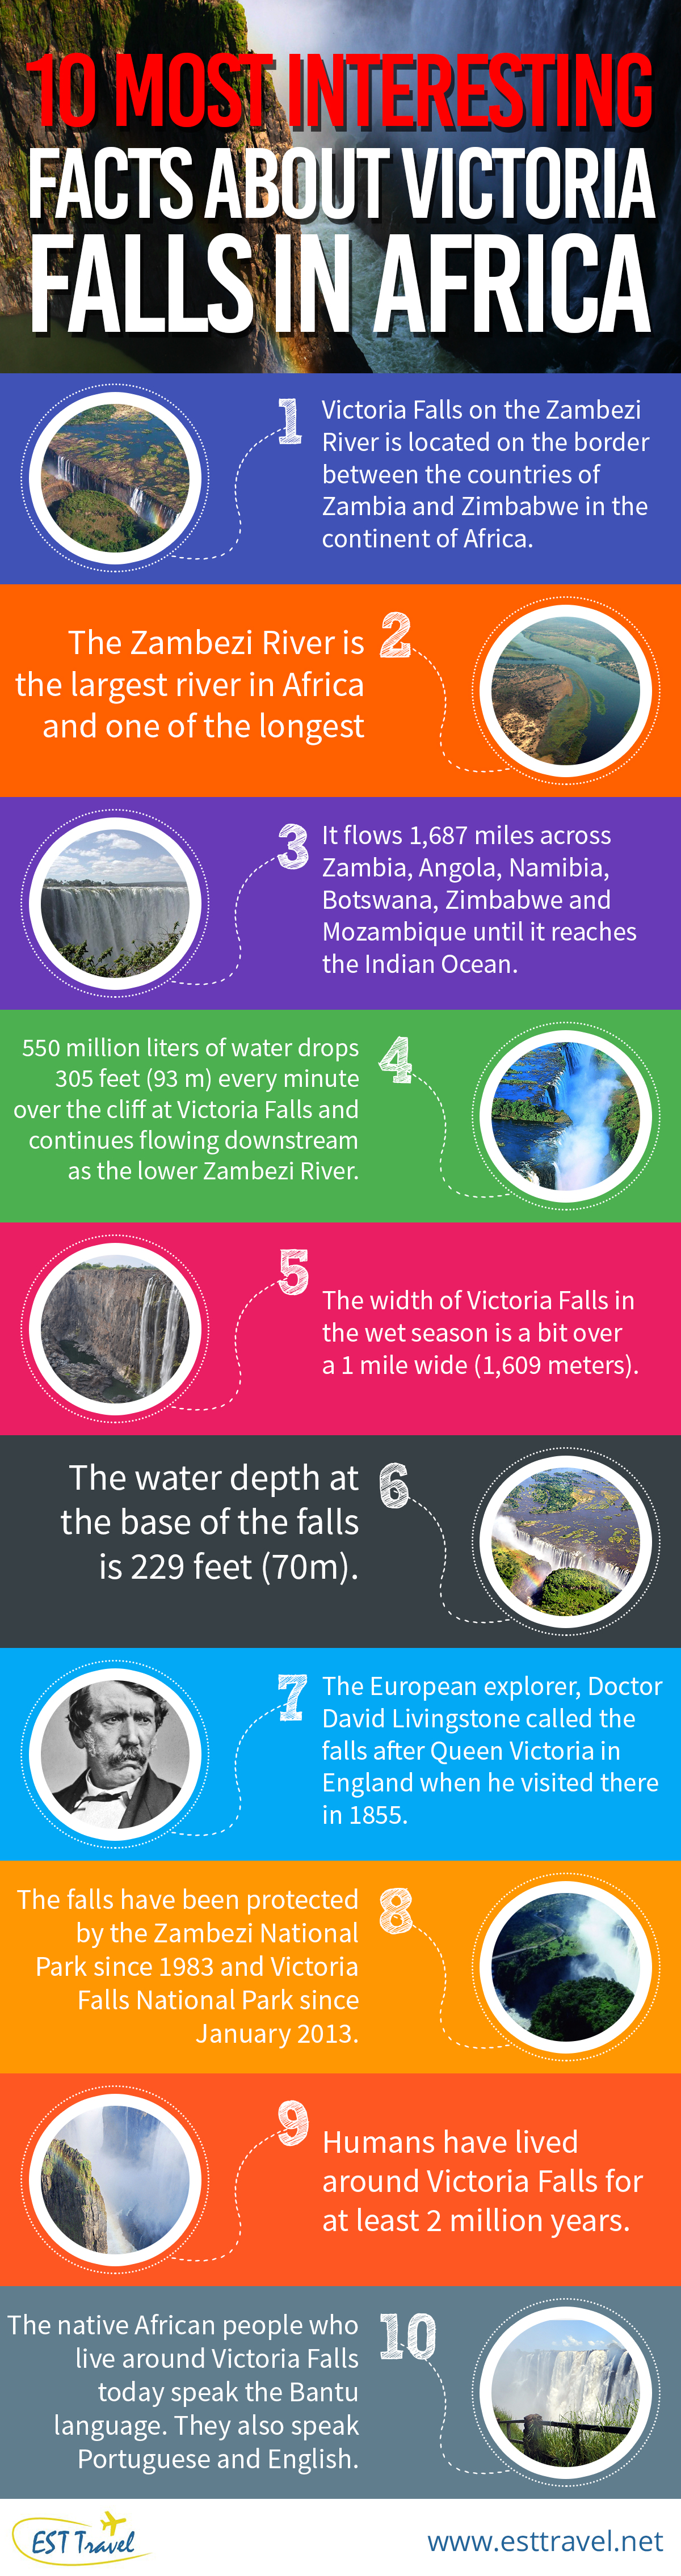 10 Most Interesting Facts About Victoria Falls In Africa